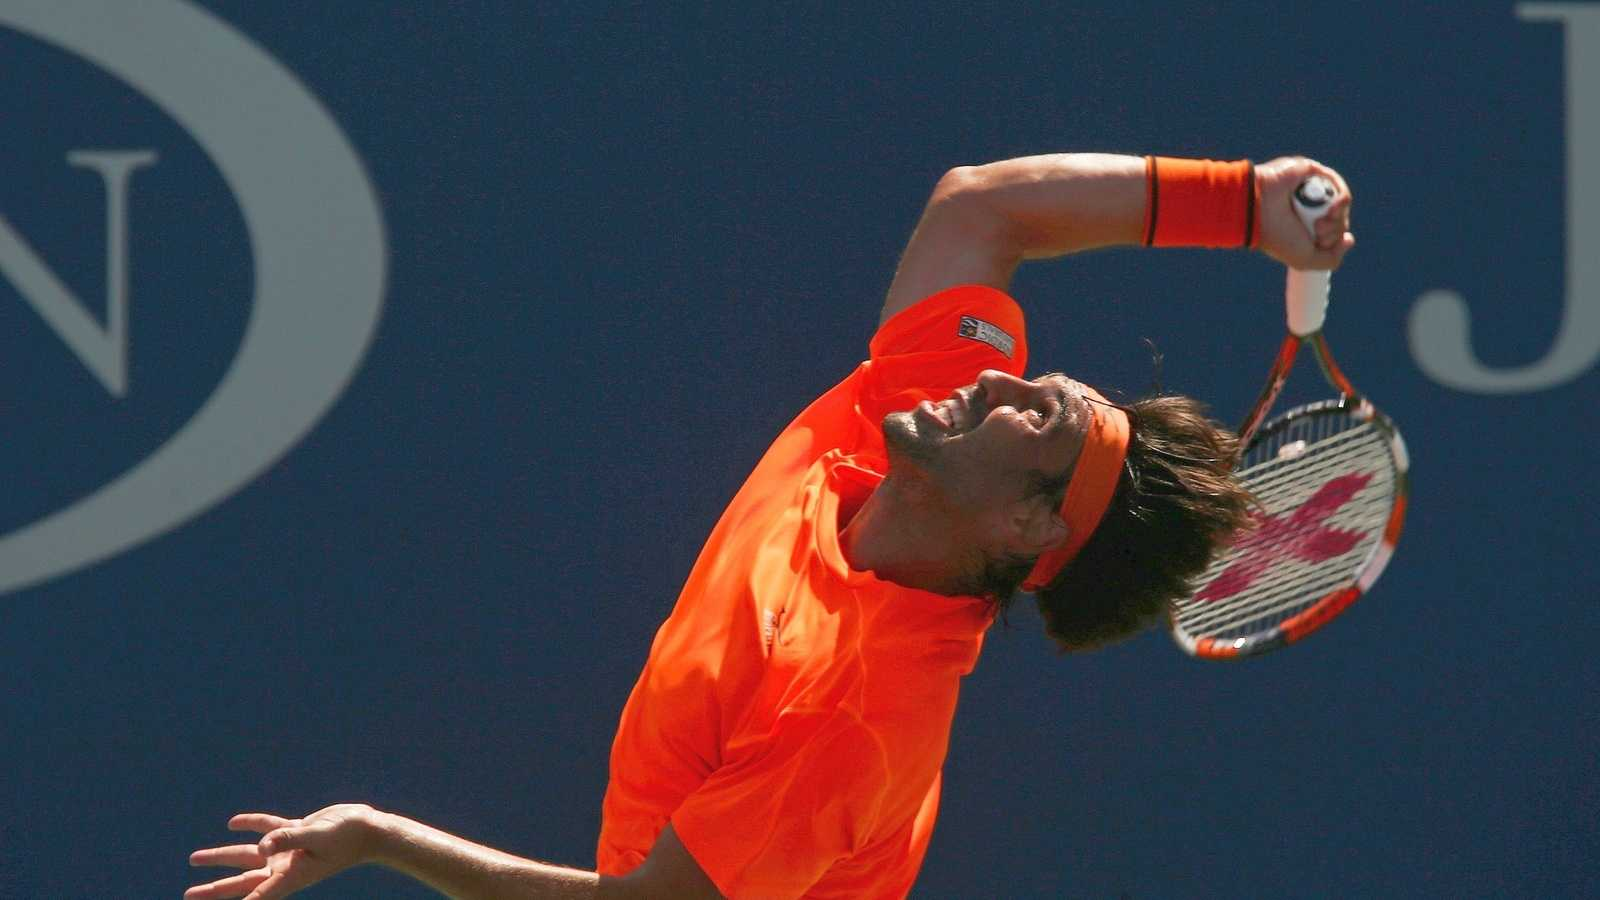 Marcos Baghdatis, of Cyprus, serves to Gael Monfils, of France, during the fourth round of the U.S. Open tennis tournament, Sunday, Sept. 4, 2016, in New York.